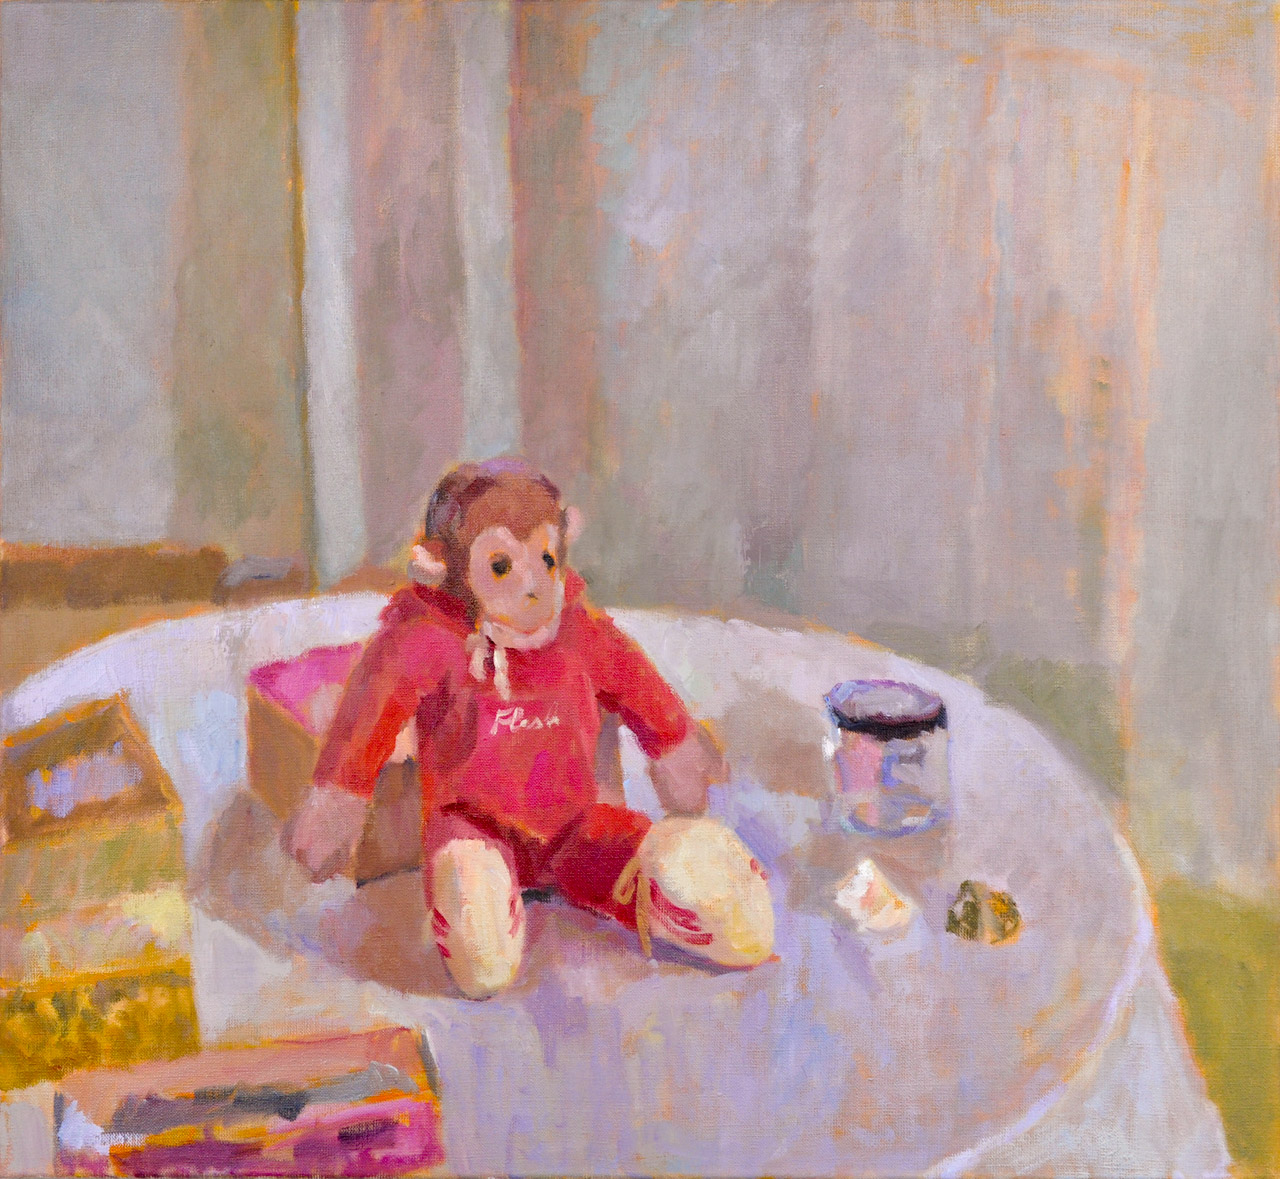 How Gwen John inspired me to paint Flash the Toy Monkey